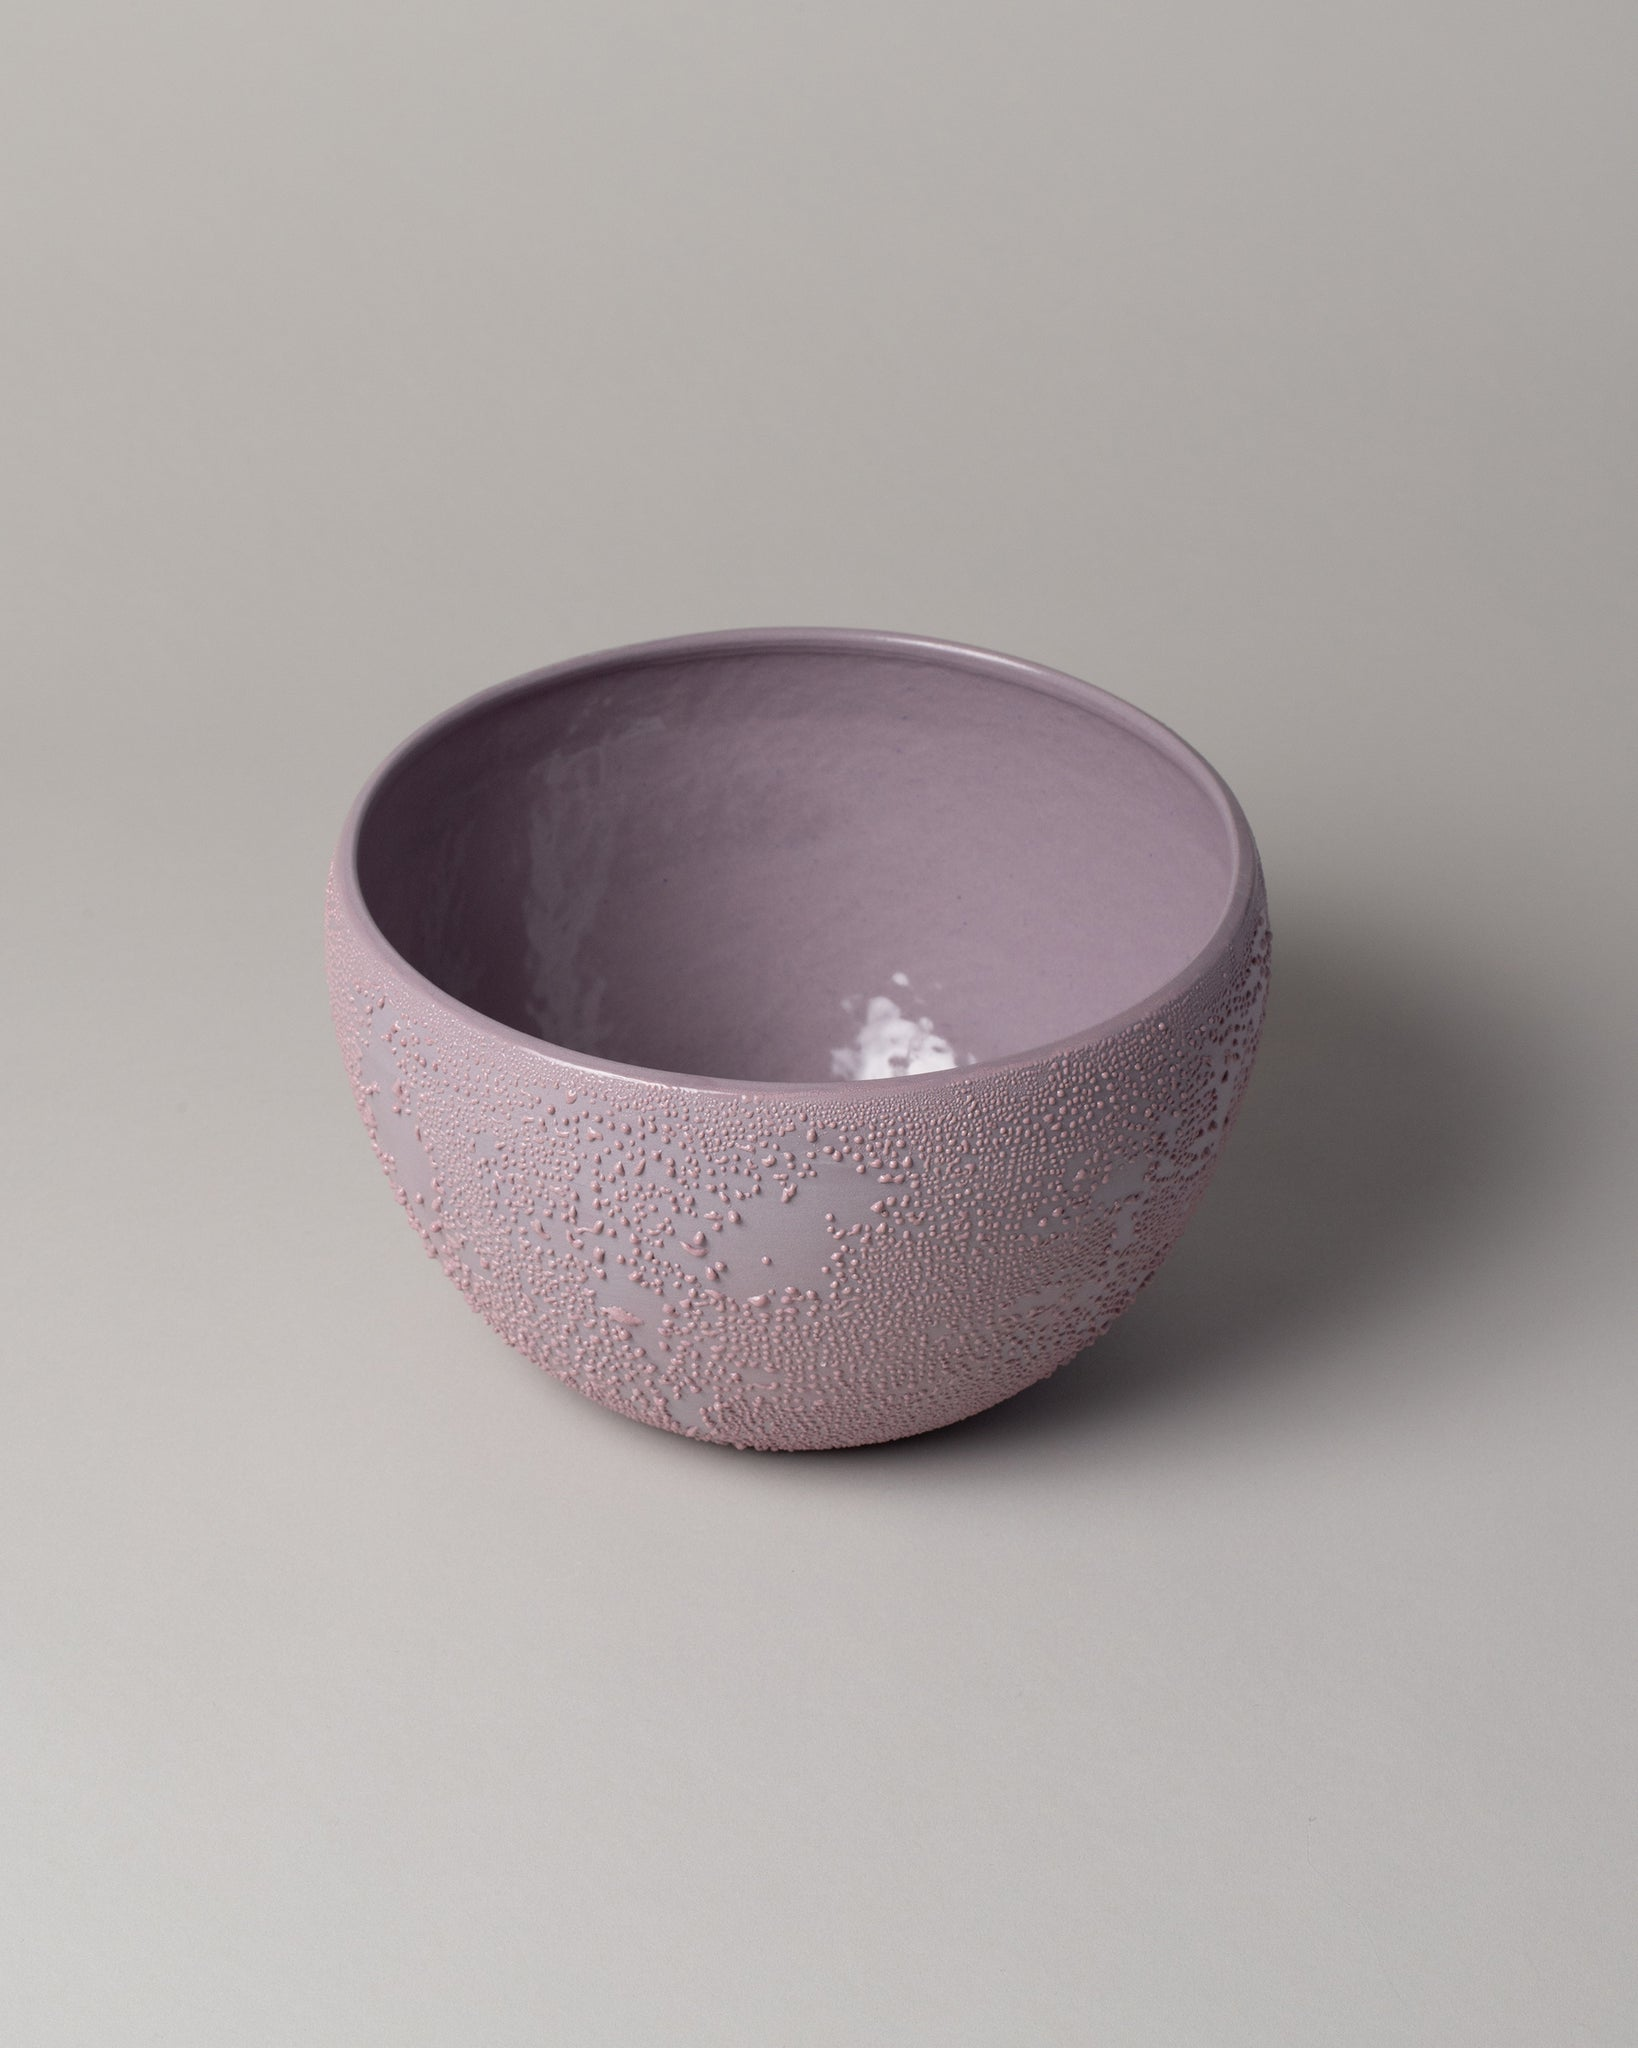 Dew Serving Bowl in Lavender Top View